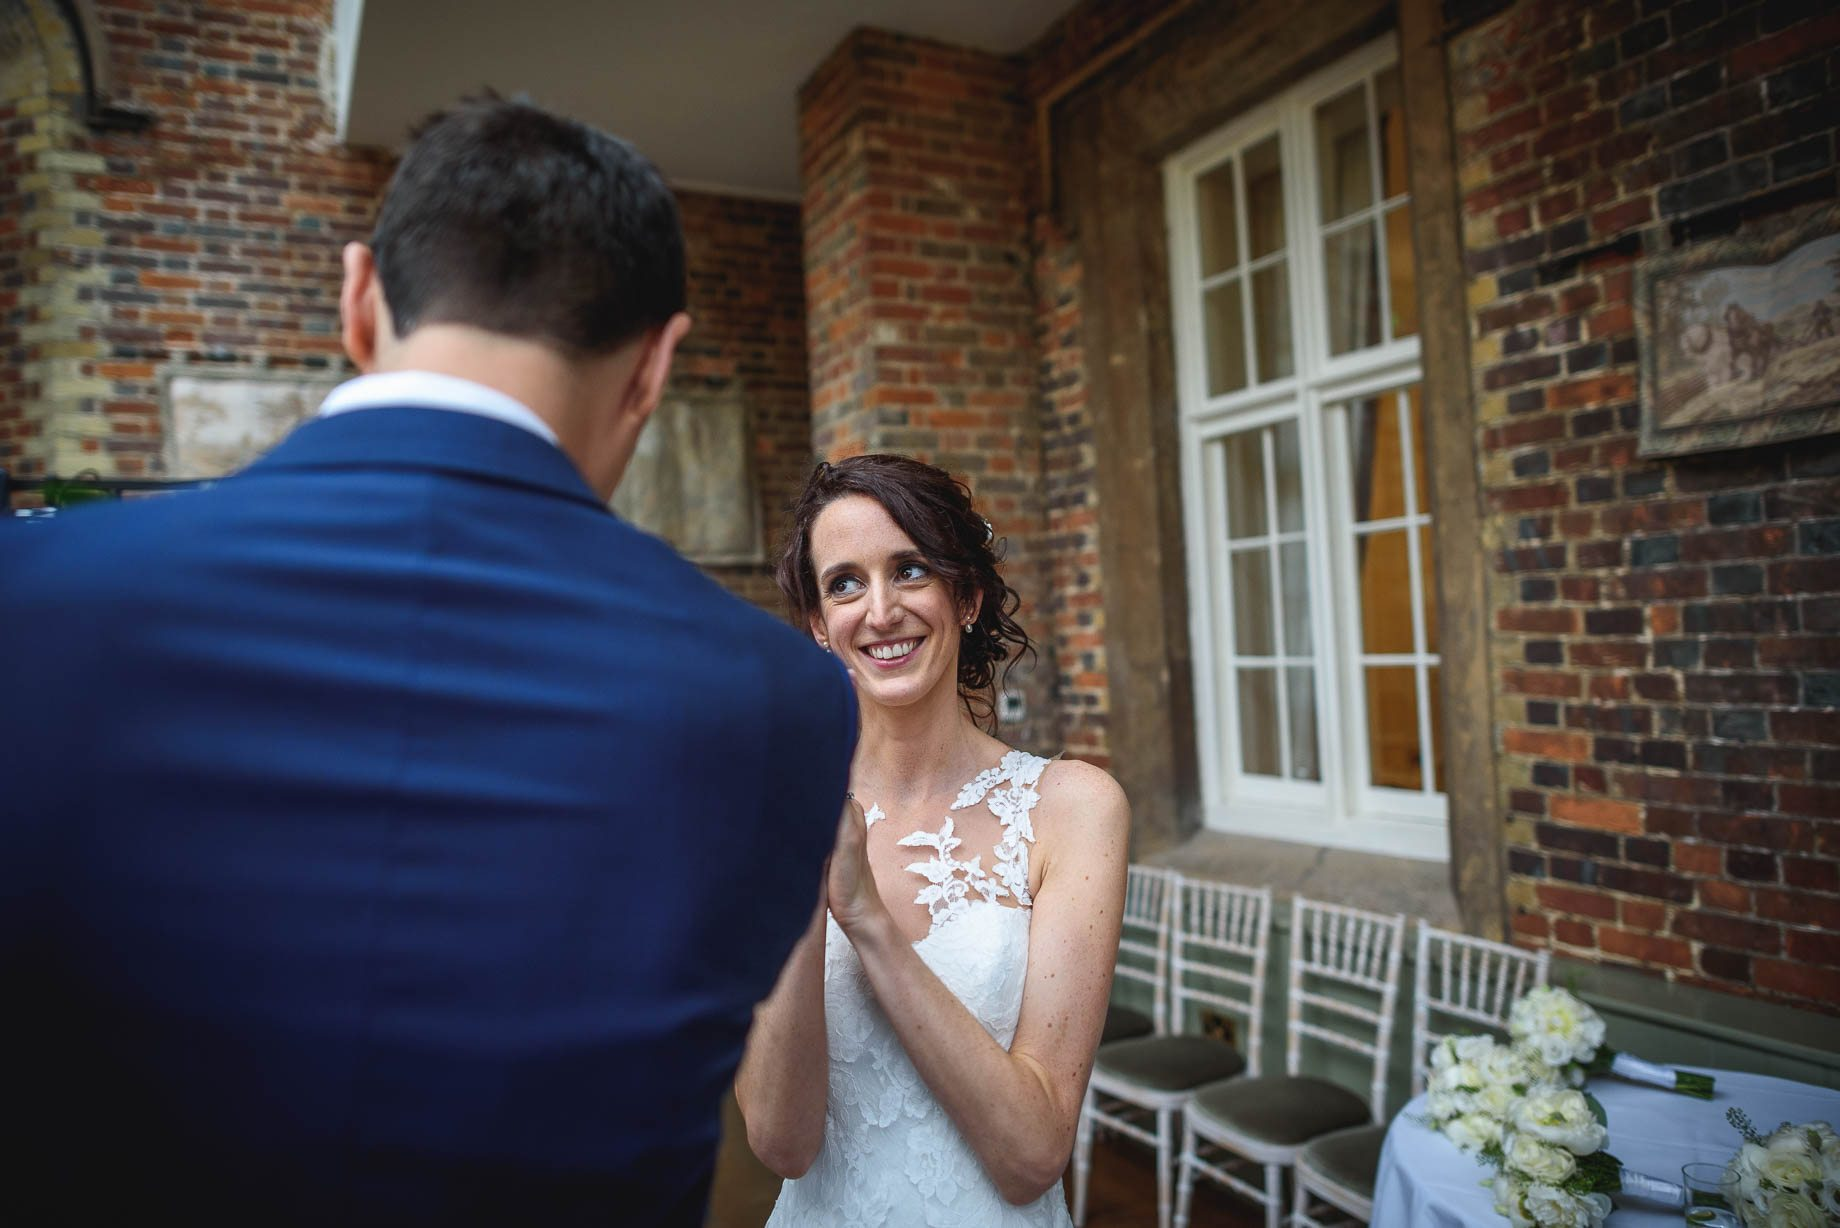 Hertfordshire wedding photography - Sarah and Stephen by Guy Collier Photography (161 of 161)